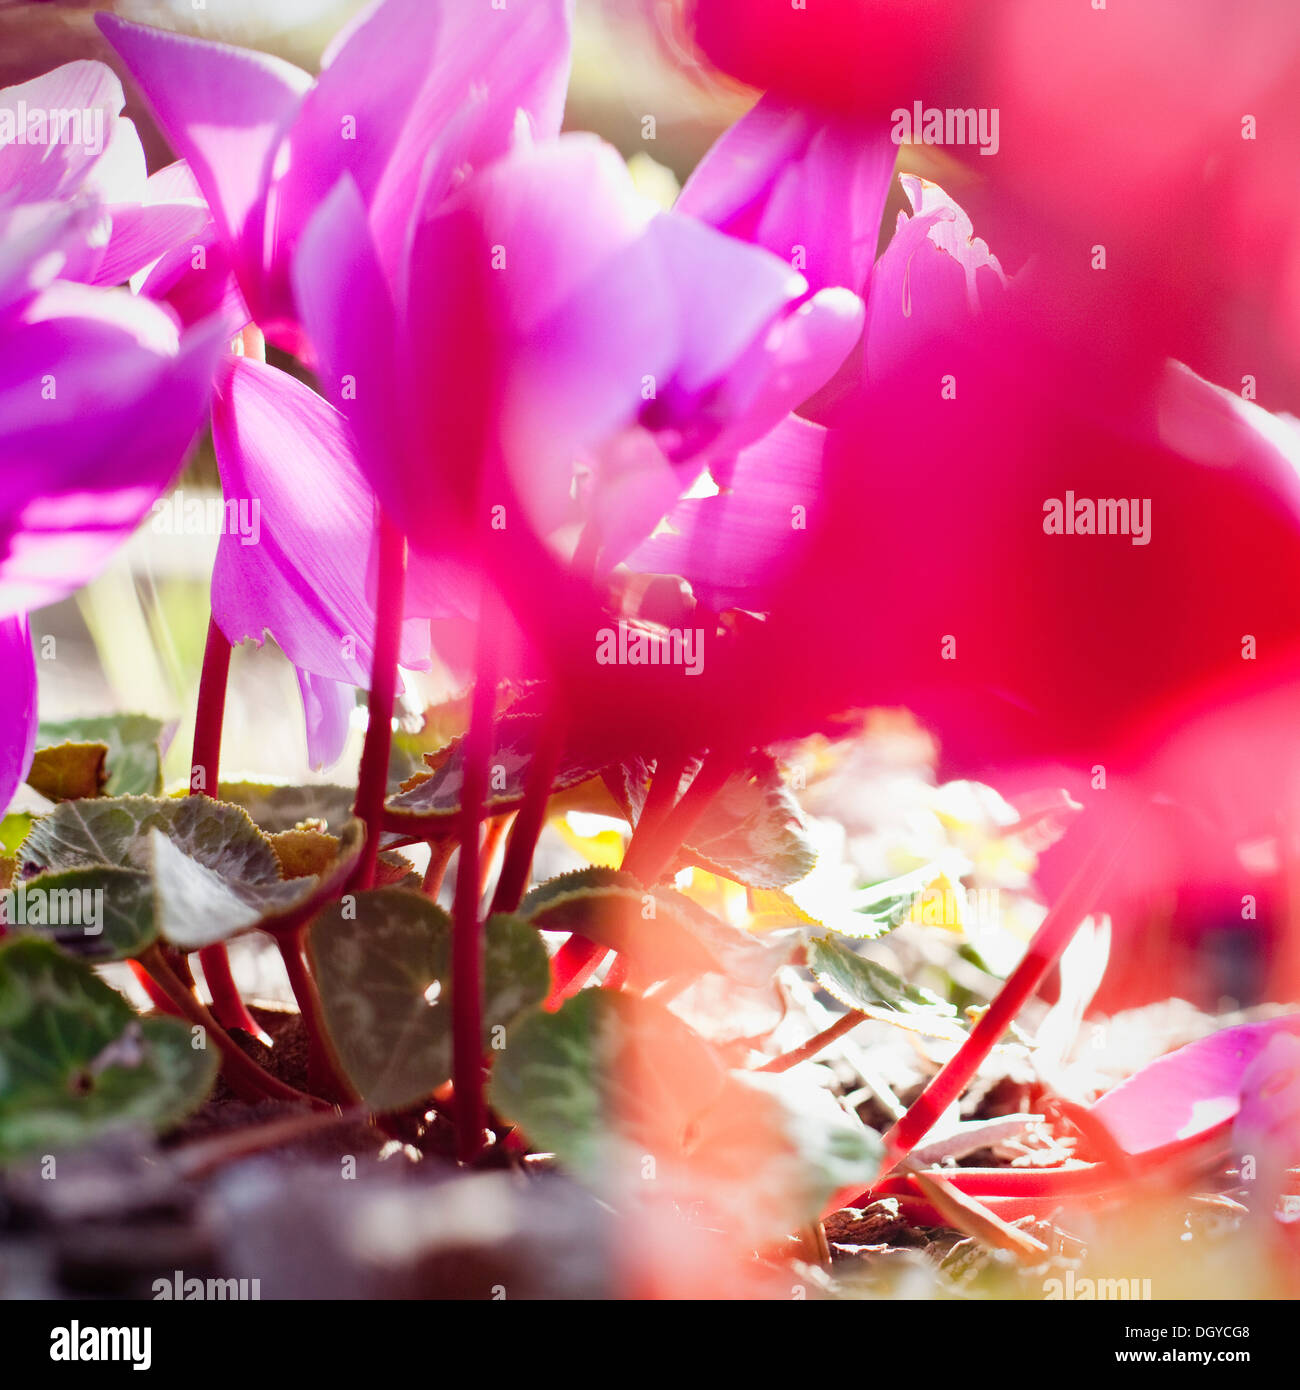 Vibrant magenta Cyclamen in bloom, close-up - Stock Image